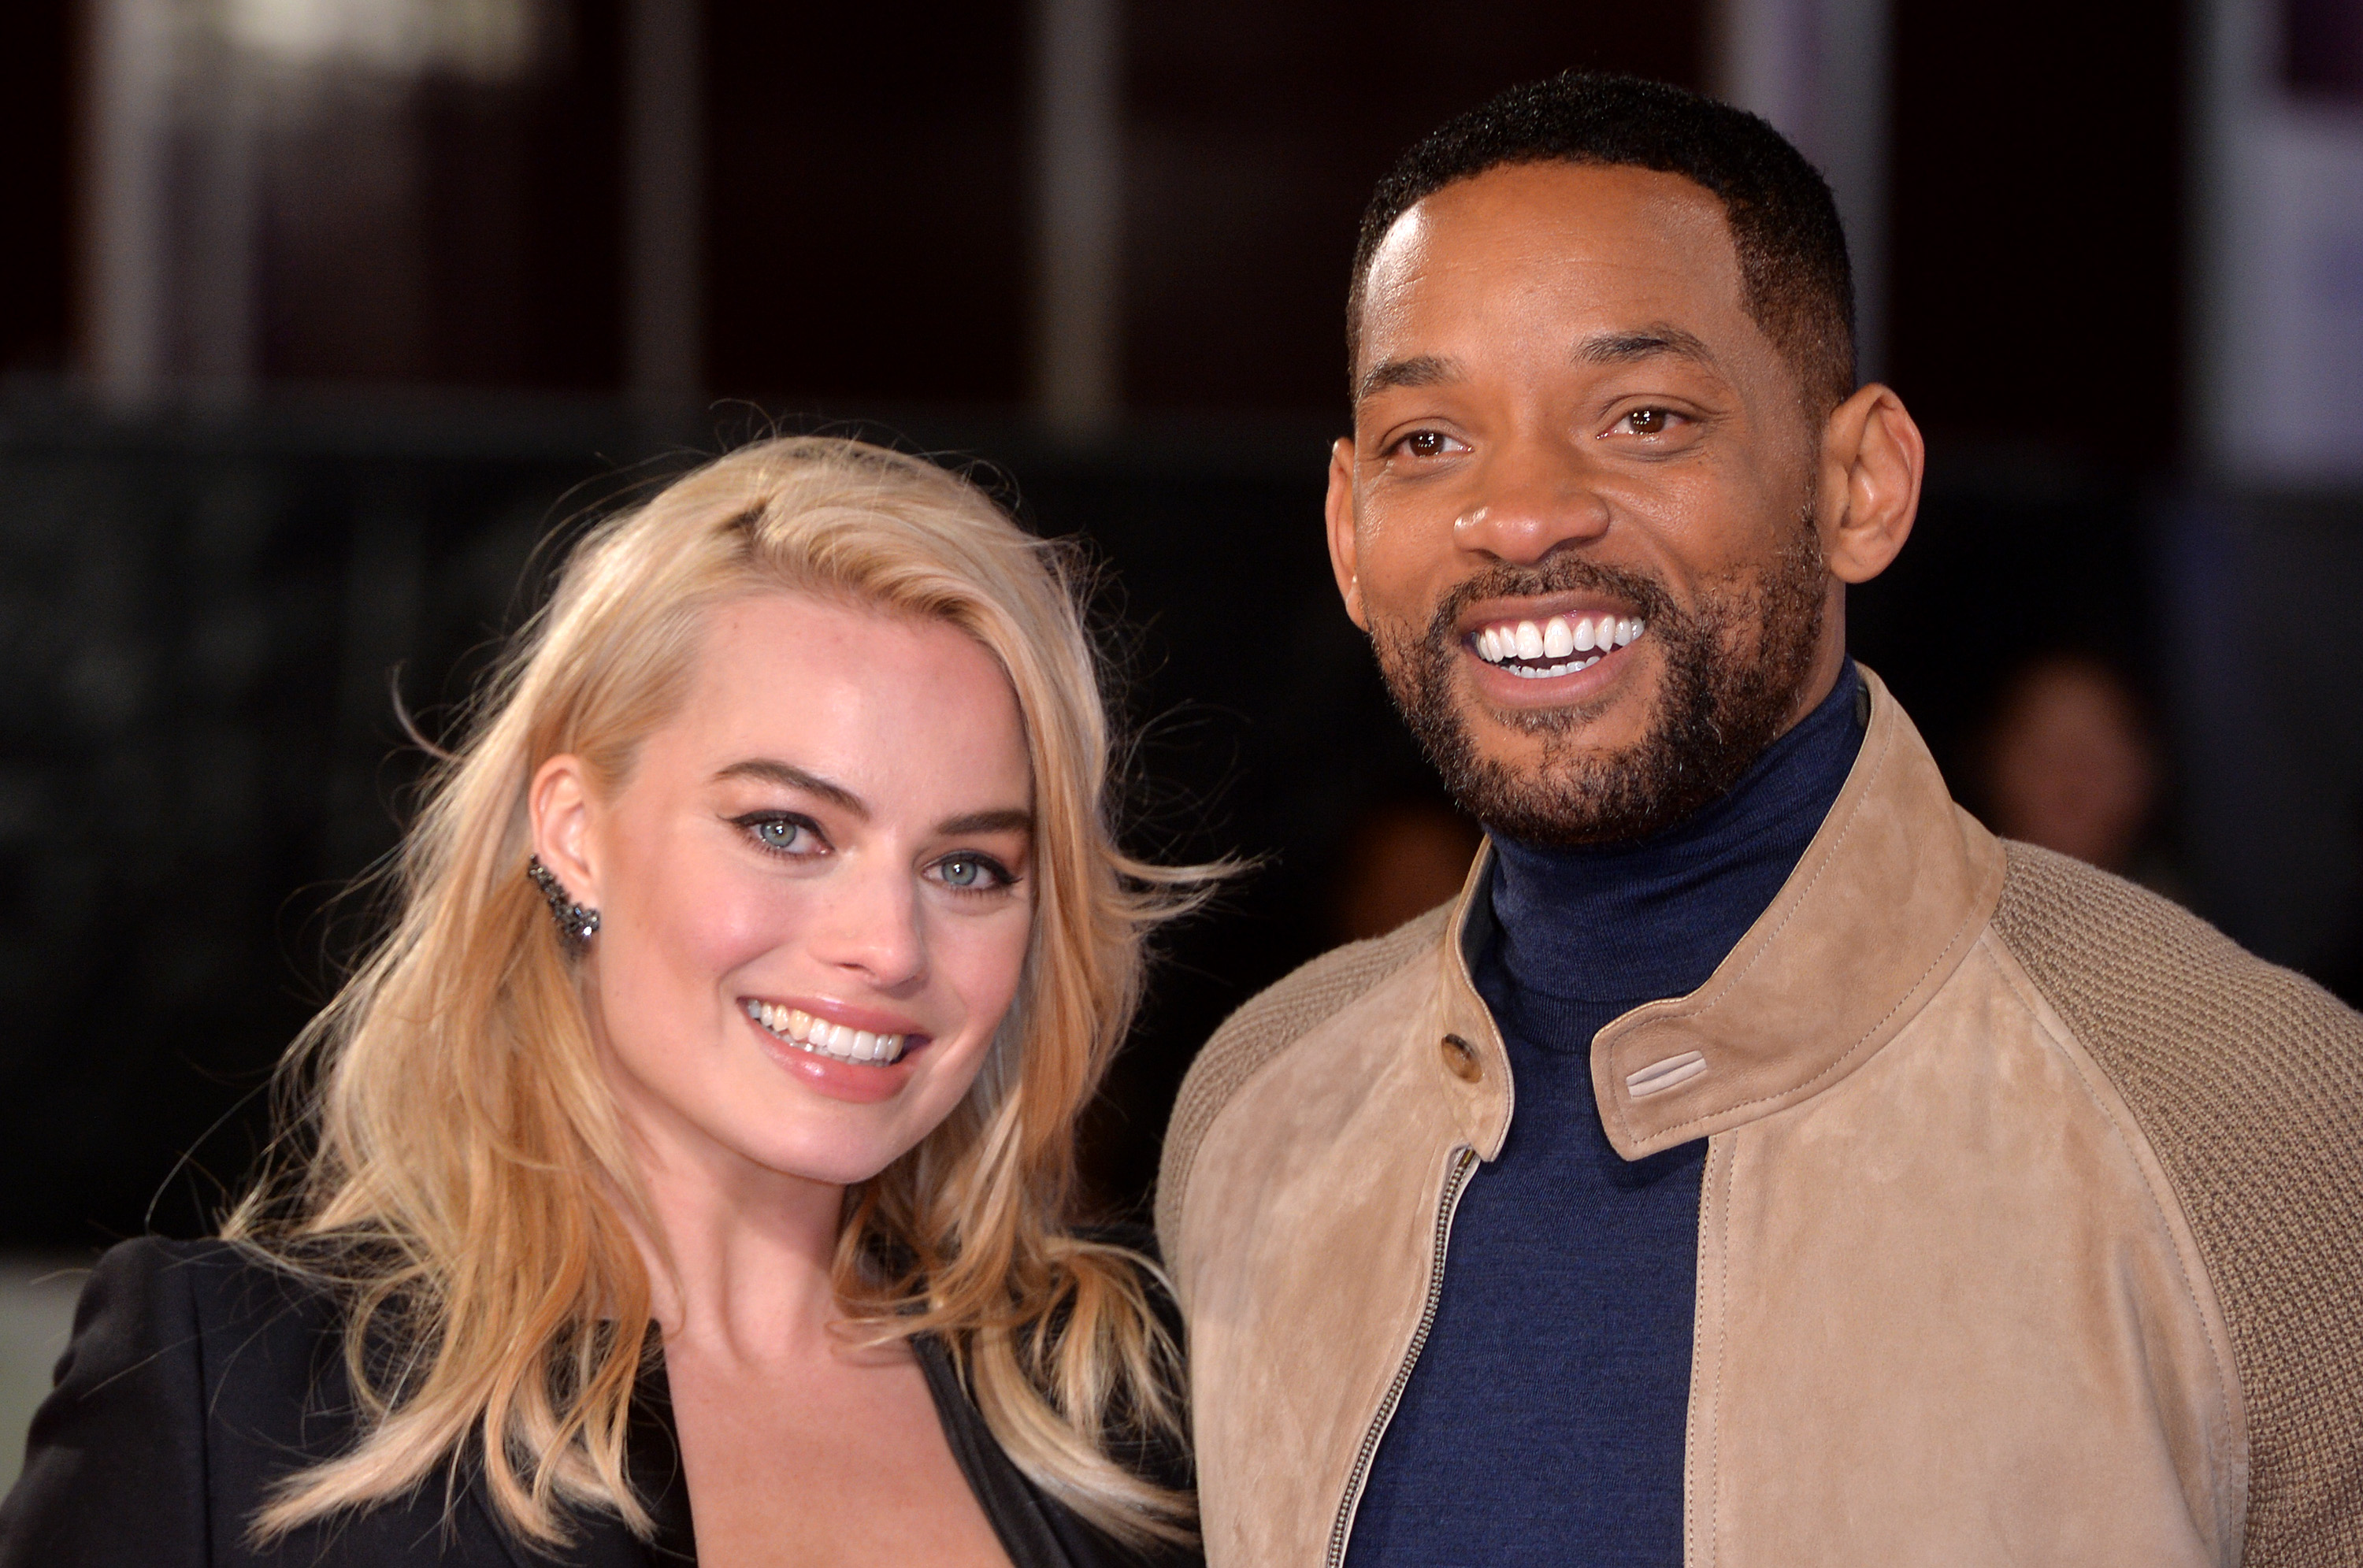 Will Smith and Margot Robbie's insult battle is actually adorable